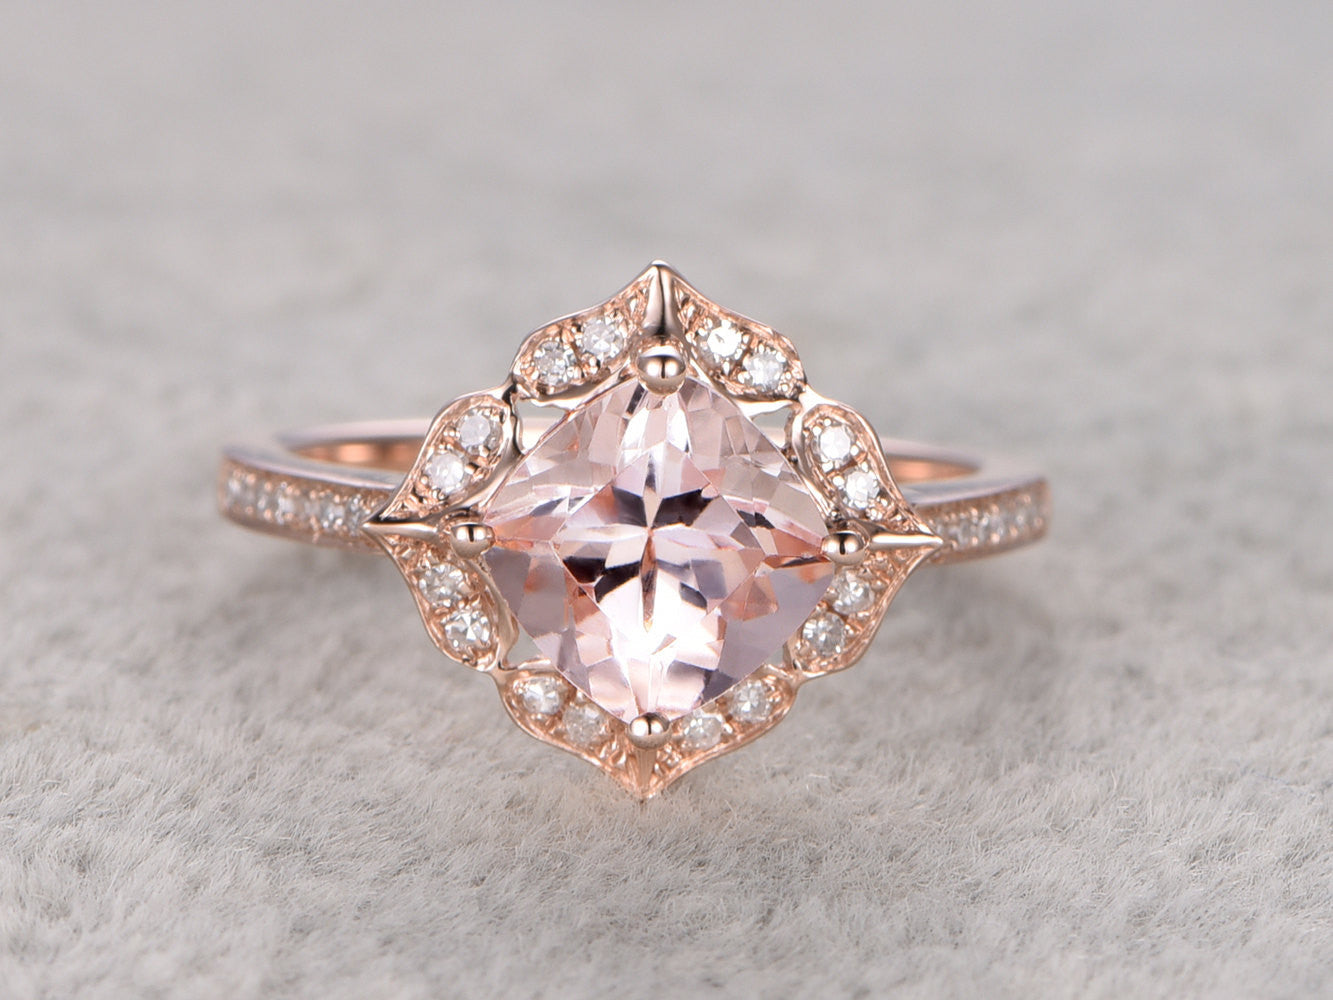 7mm Cushion Morganite Engagement ring Rose gold,Diamond wedding band,Promise Ring,Bridal Ring,Retro Vintage Floral,Custom made ring setting